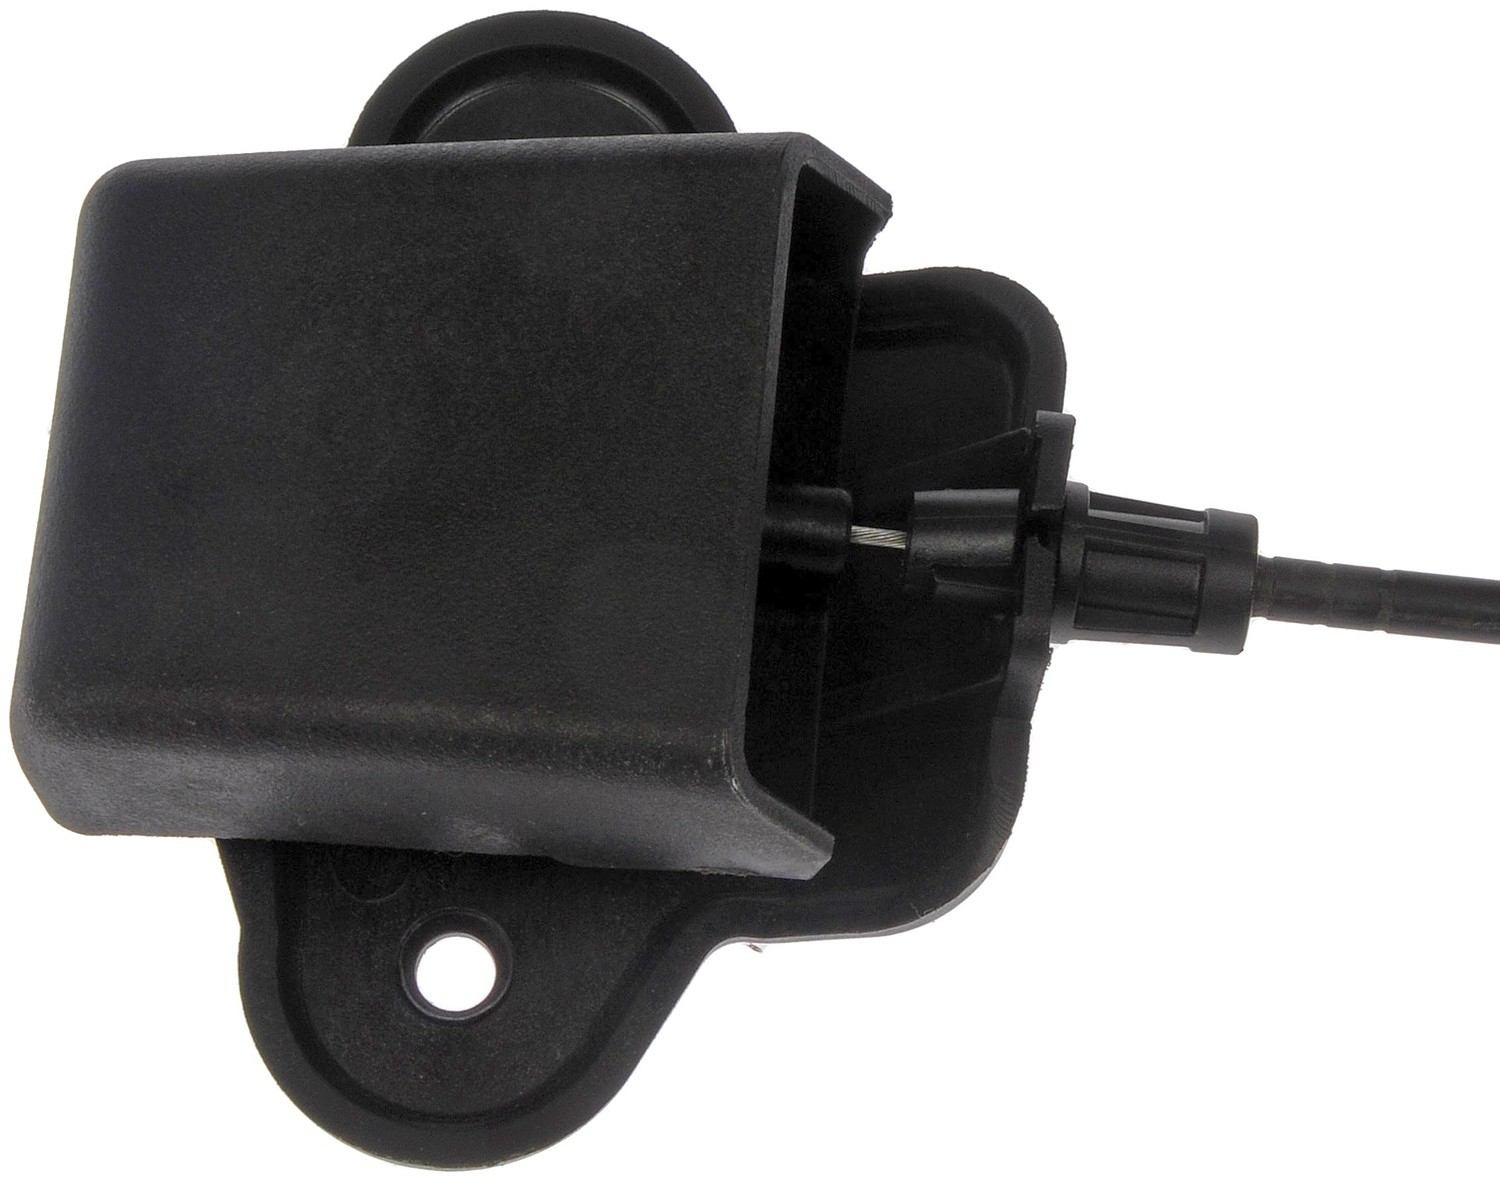 DORMAN OE SOLUTIONS - Hood Release Cable - DRE 912-092